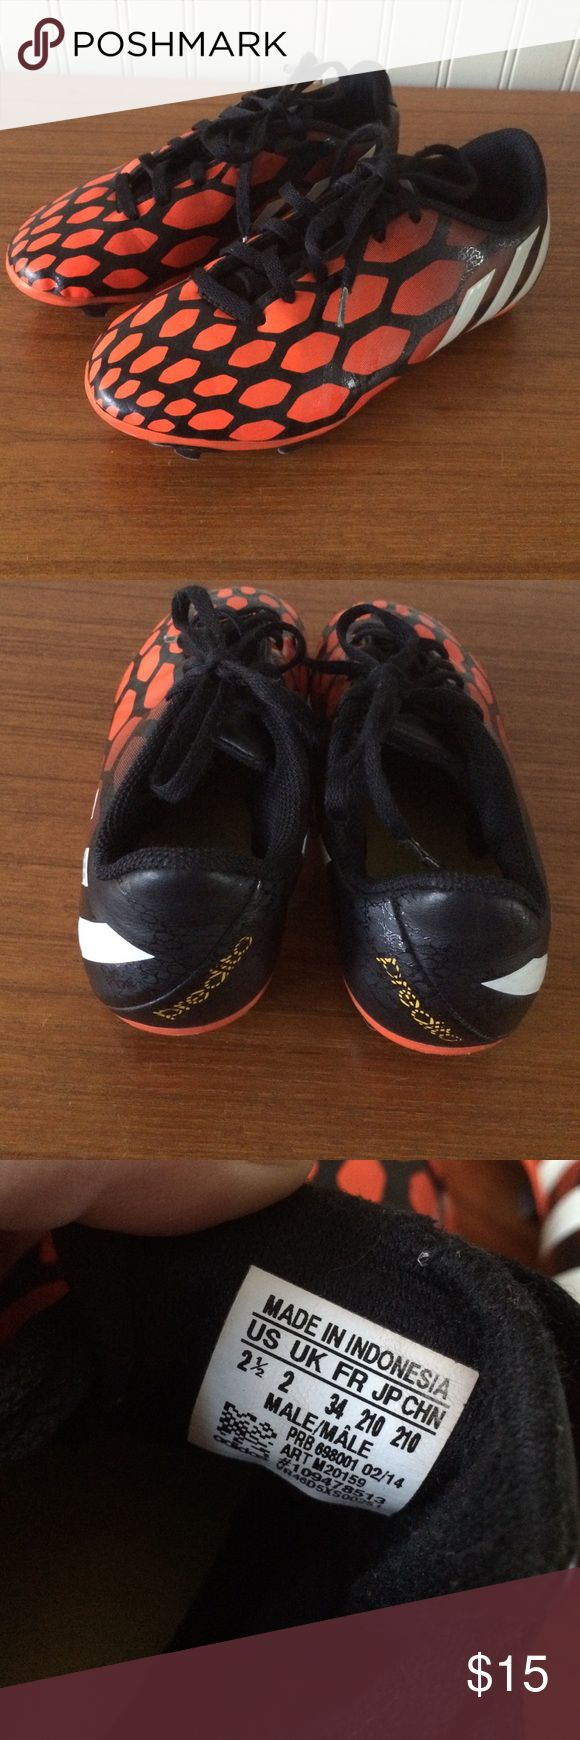 Kids adidas predito soccer cleats 2 1/2 Stylish cleats in good used condition! These are boys but unisex in my opinion Adidas Shoes Sneakers